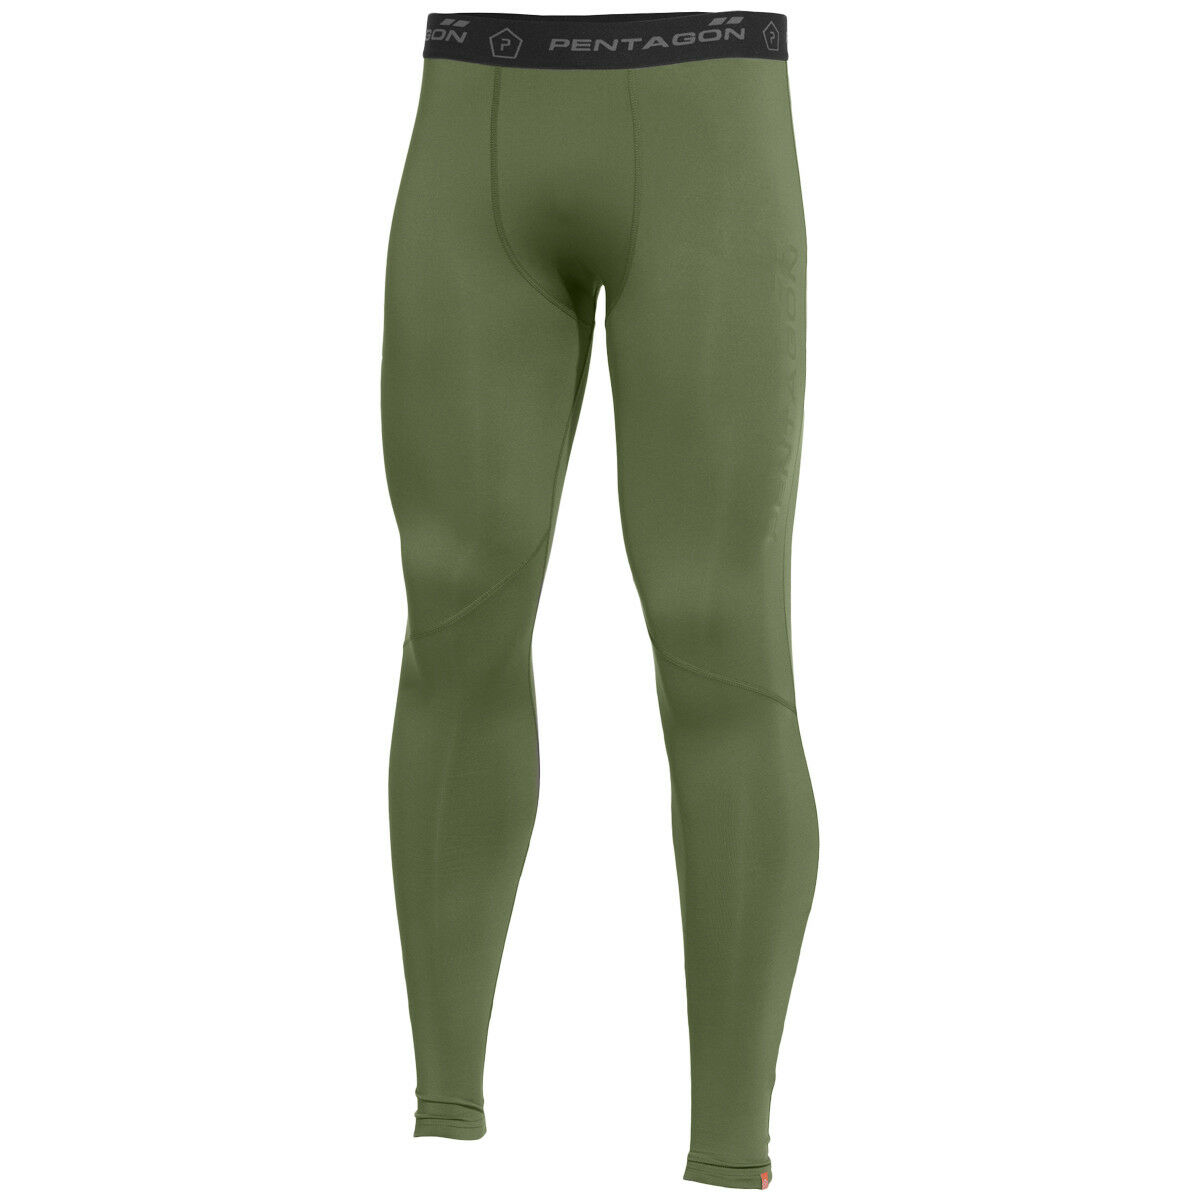 Pentagon Kissavos 2.0 Thermal Pants Base Layer Military Hunting Airsoft Olive